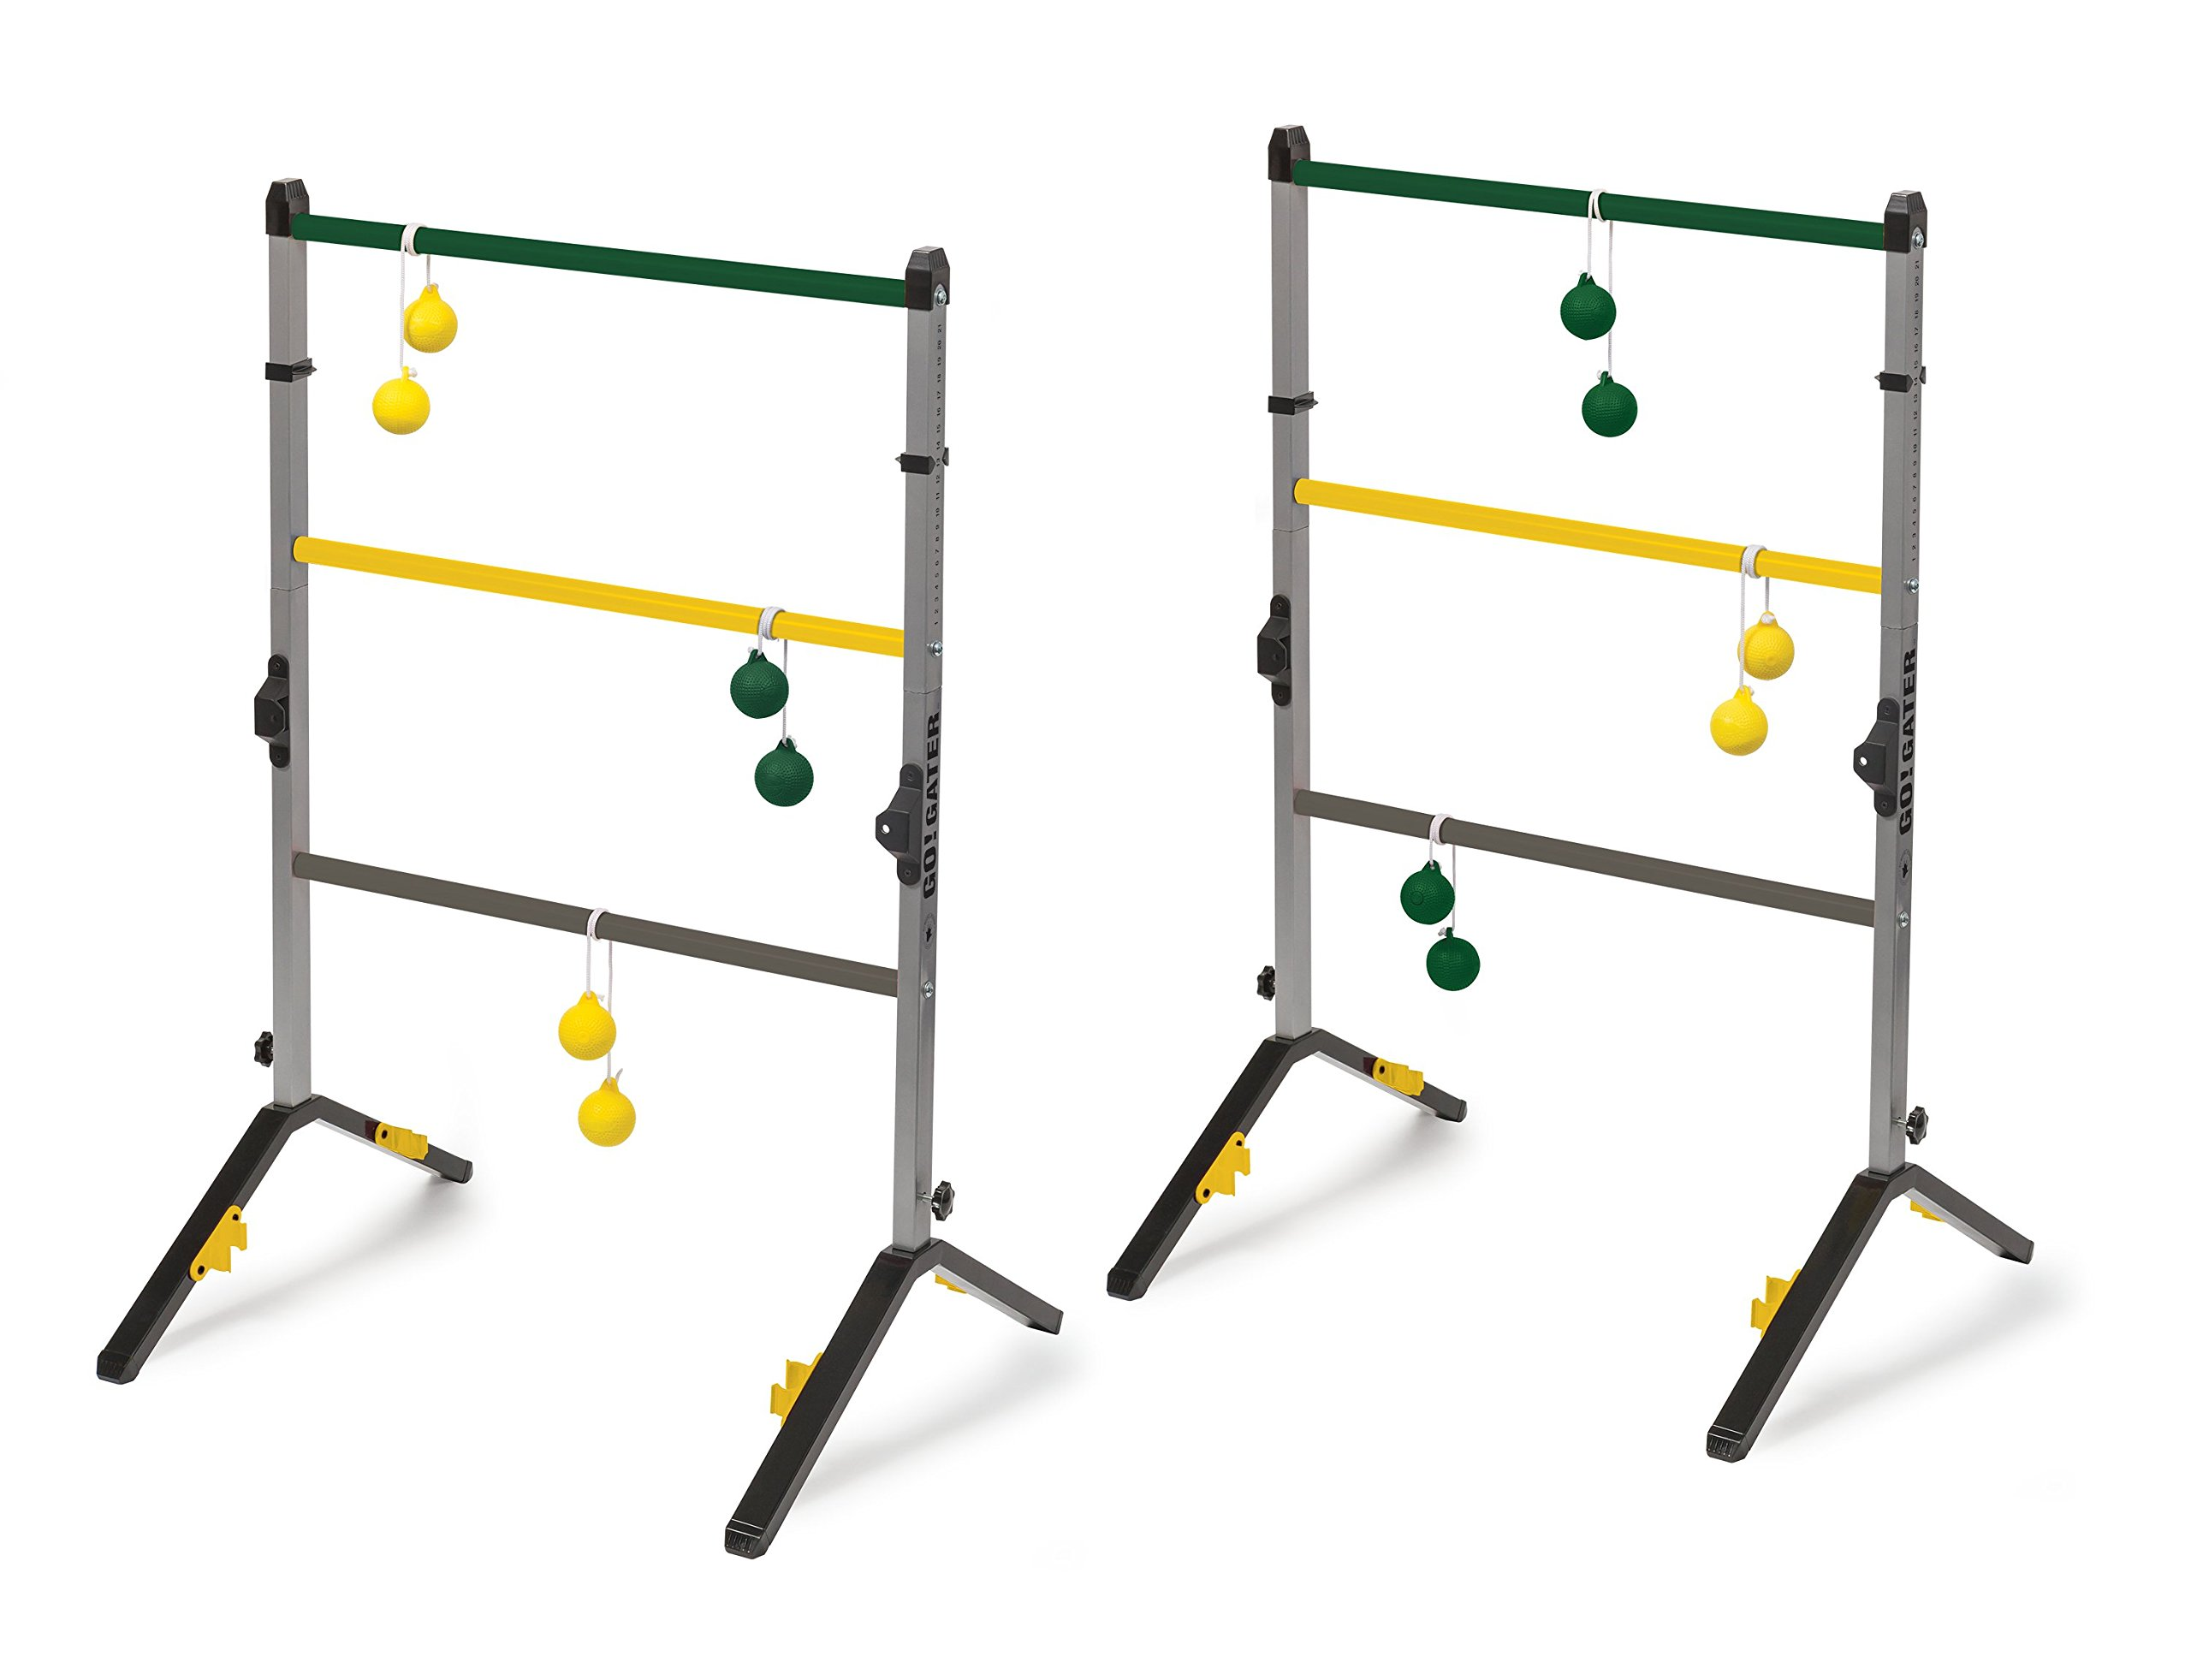 EastPoint Sports Premium Durable Steel Ladderball Tailgate Game by EastPoint Sports